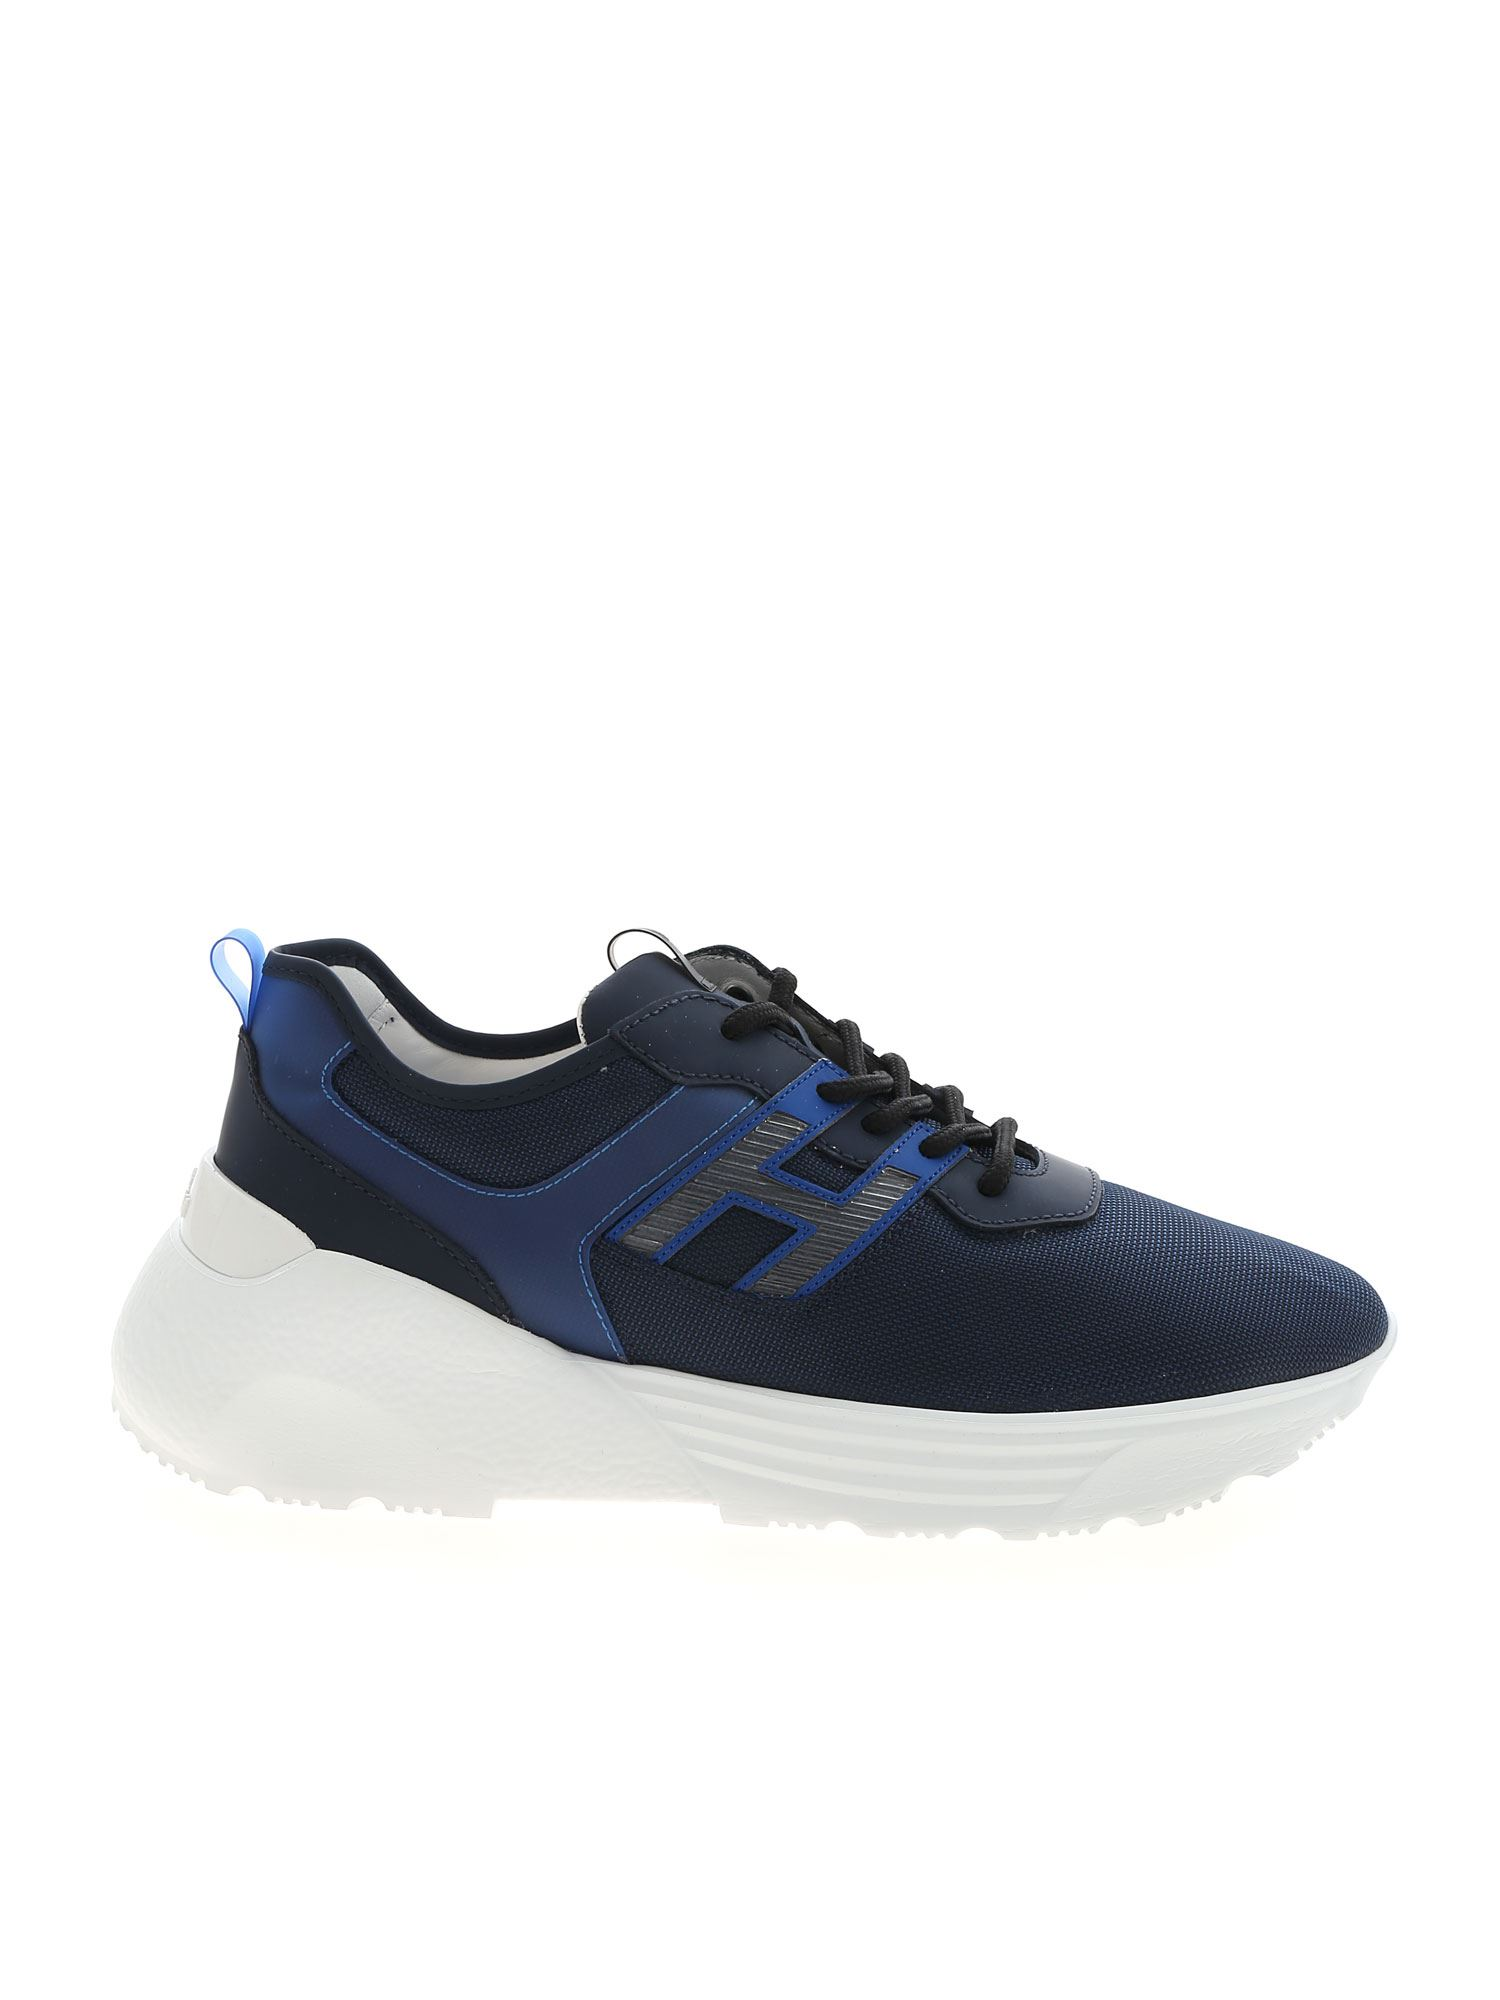 Shop Hogan Active One Sneakers In Blue